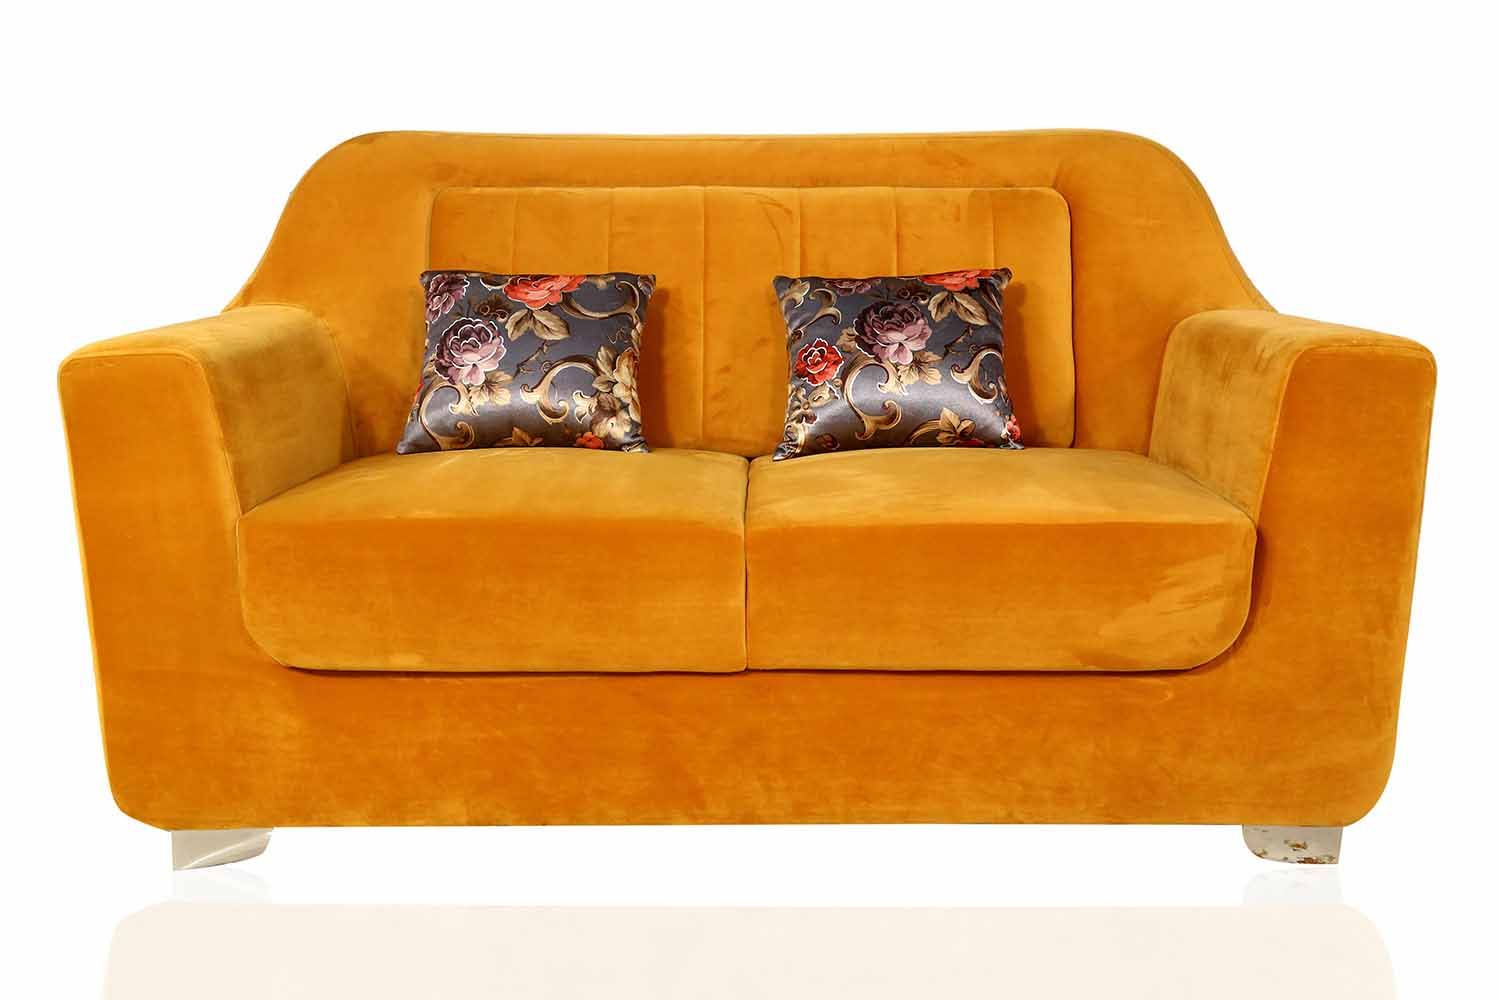 Buy Milan Sofa In Yellow Colour At Best Price In Anu Furnitures Online